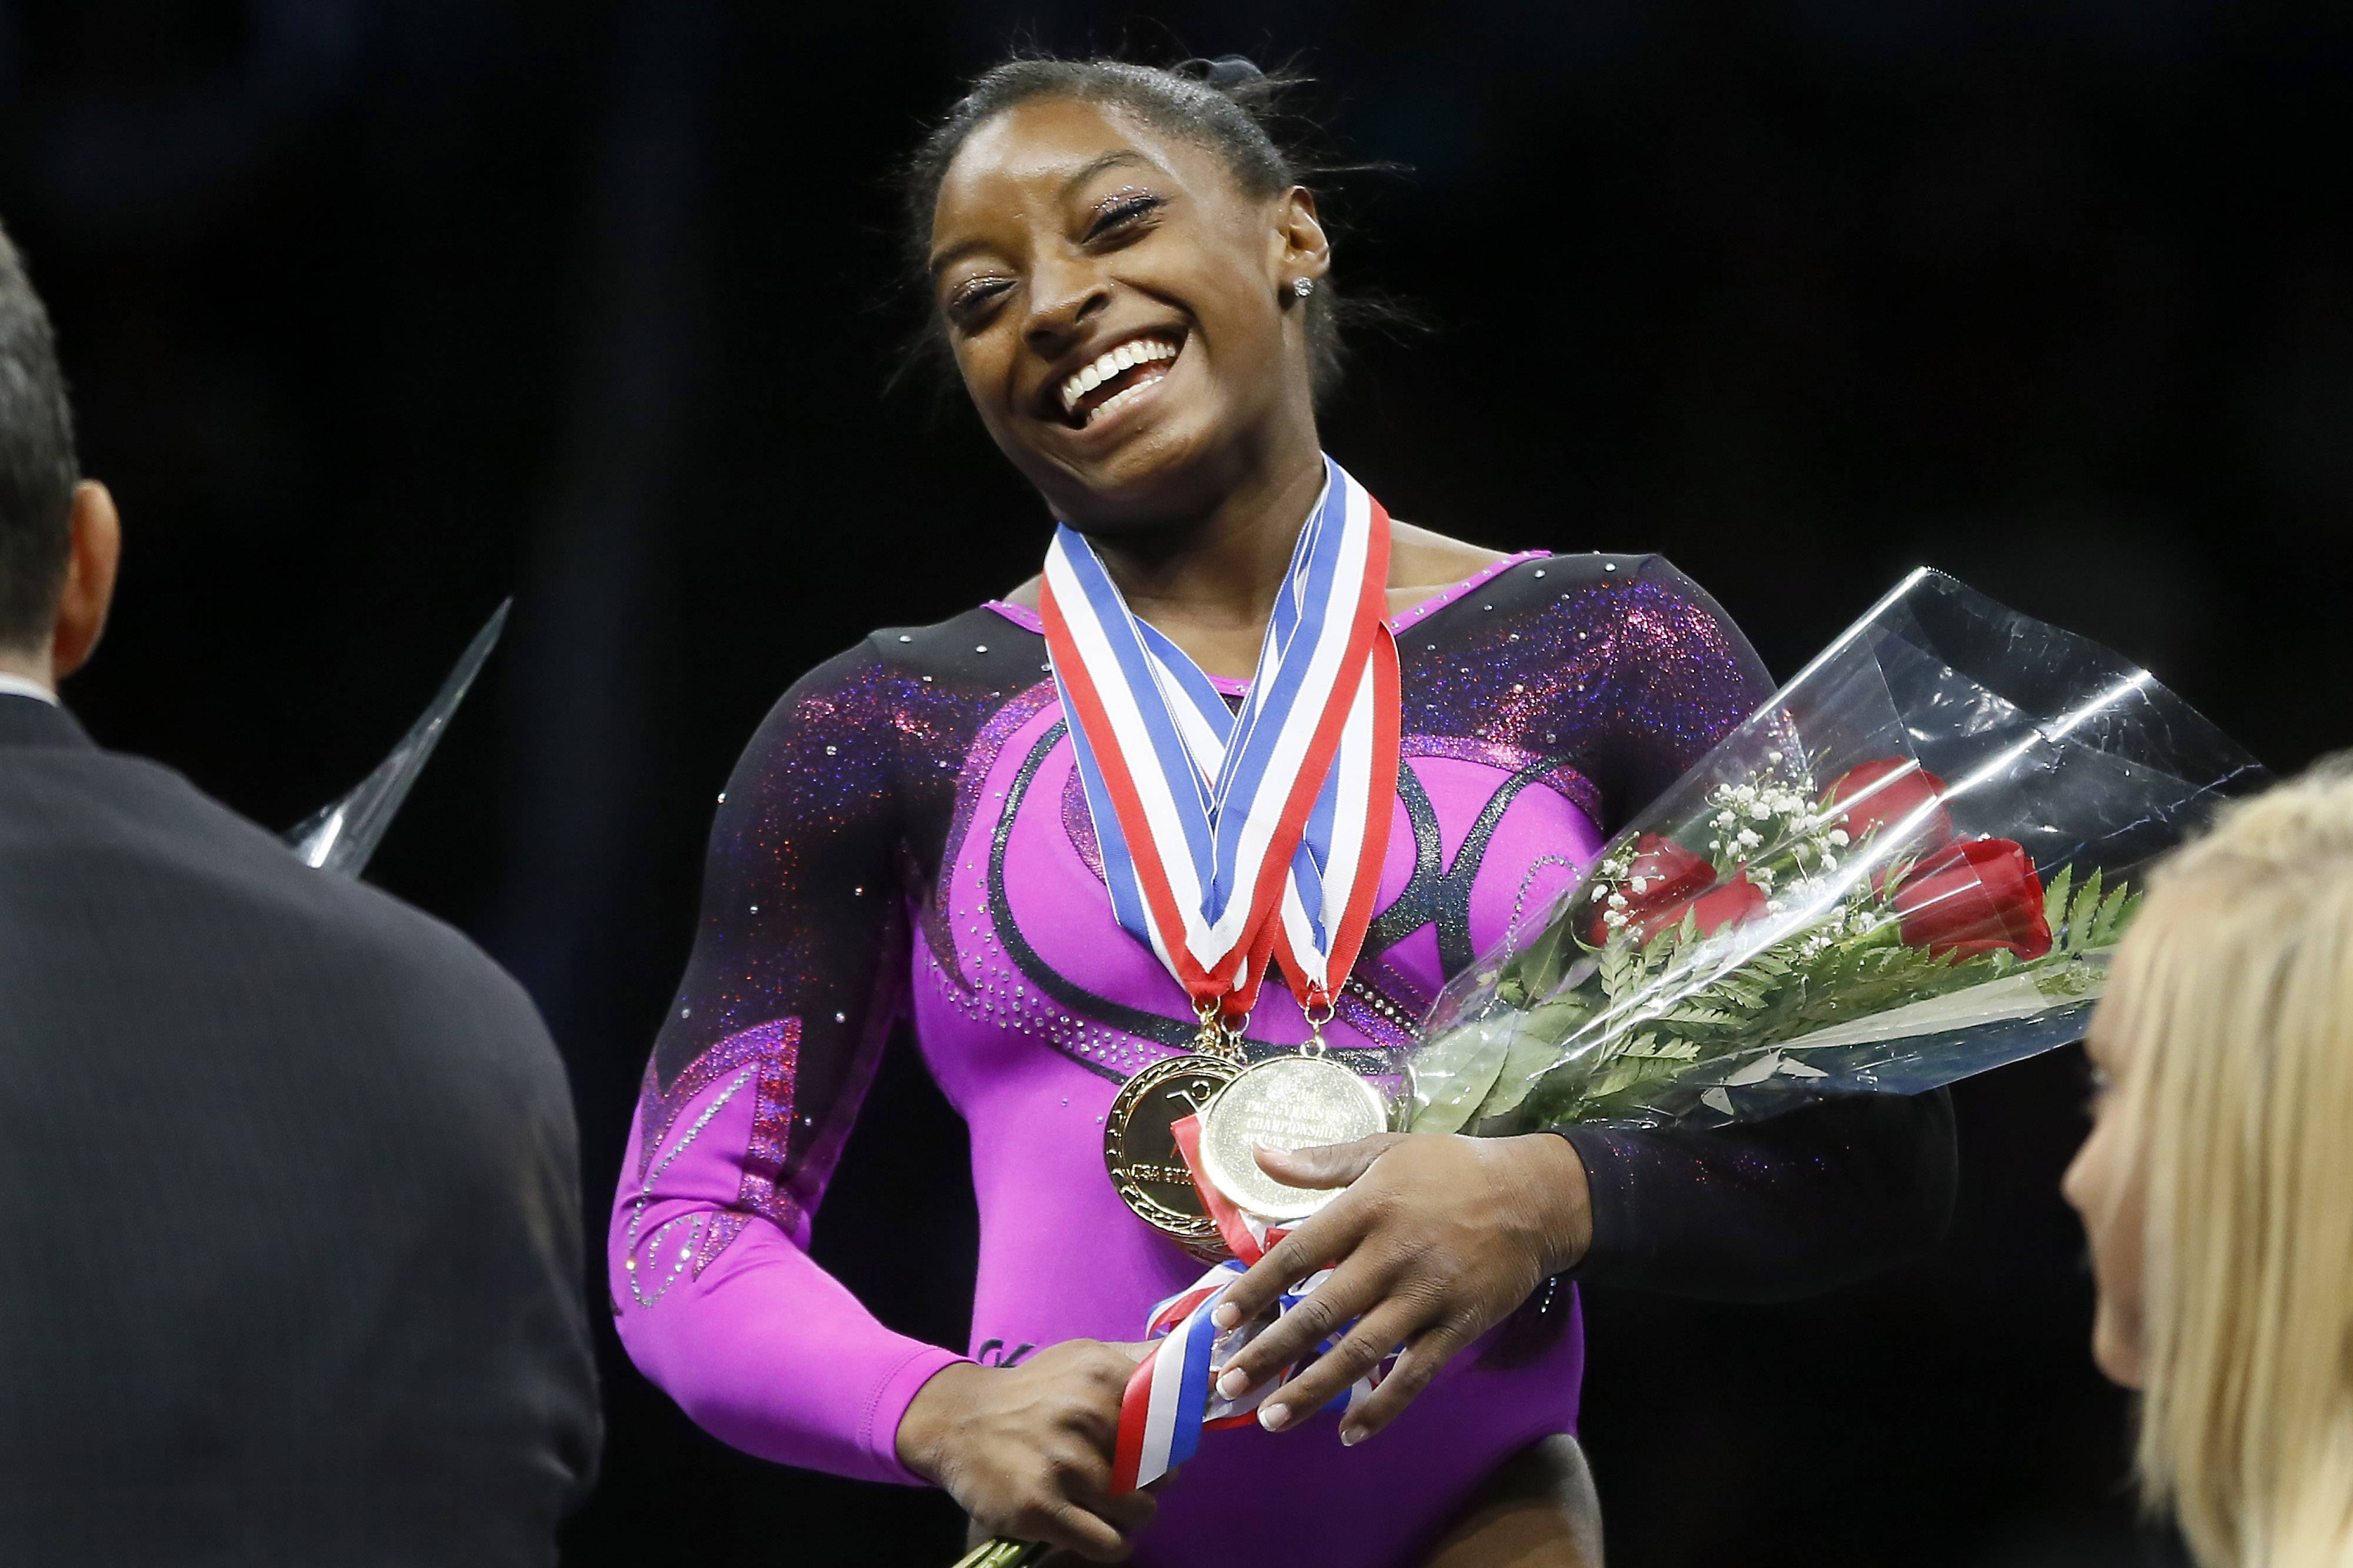 Simone Biles captured her second straight national gymnastics title Saturday in Pittsburgh.